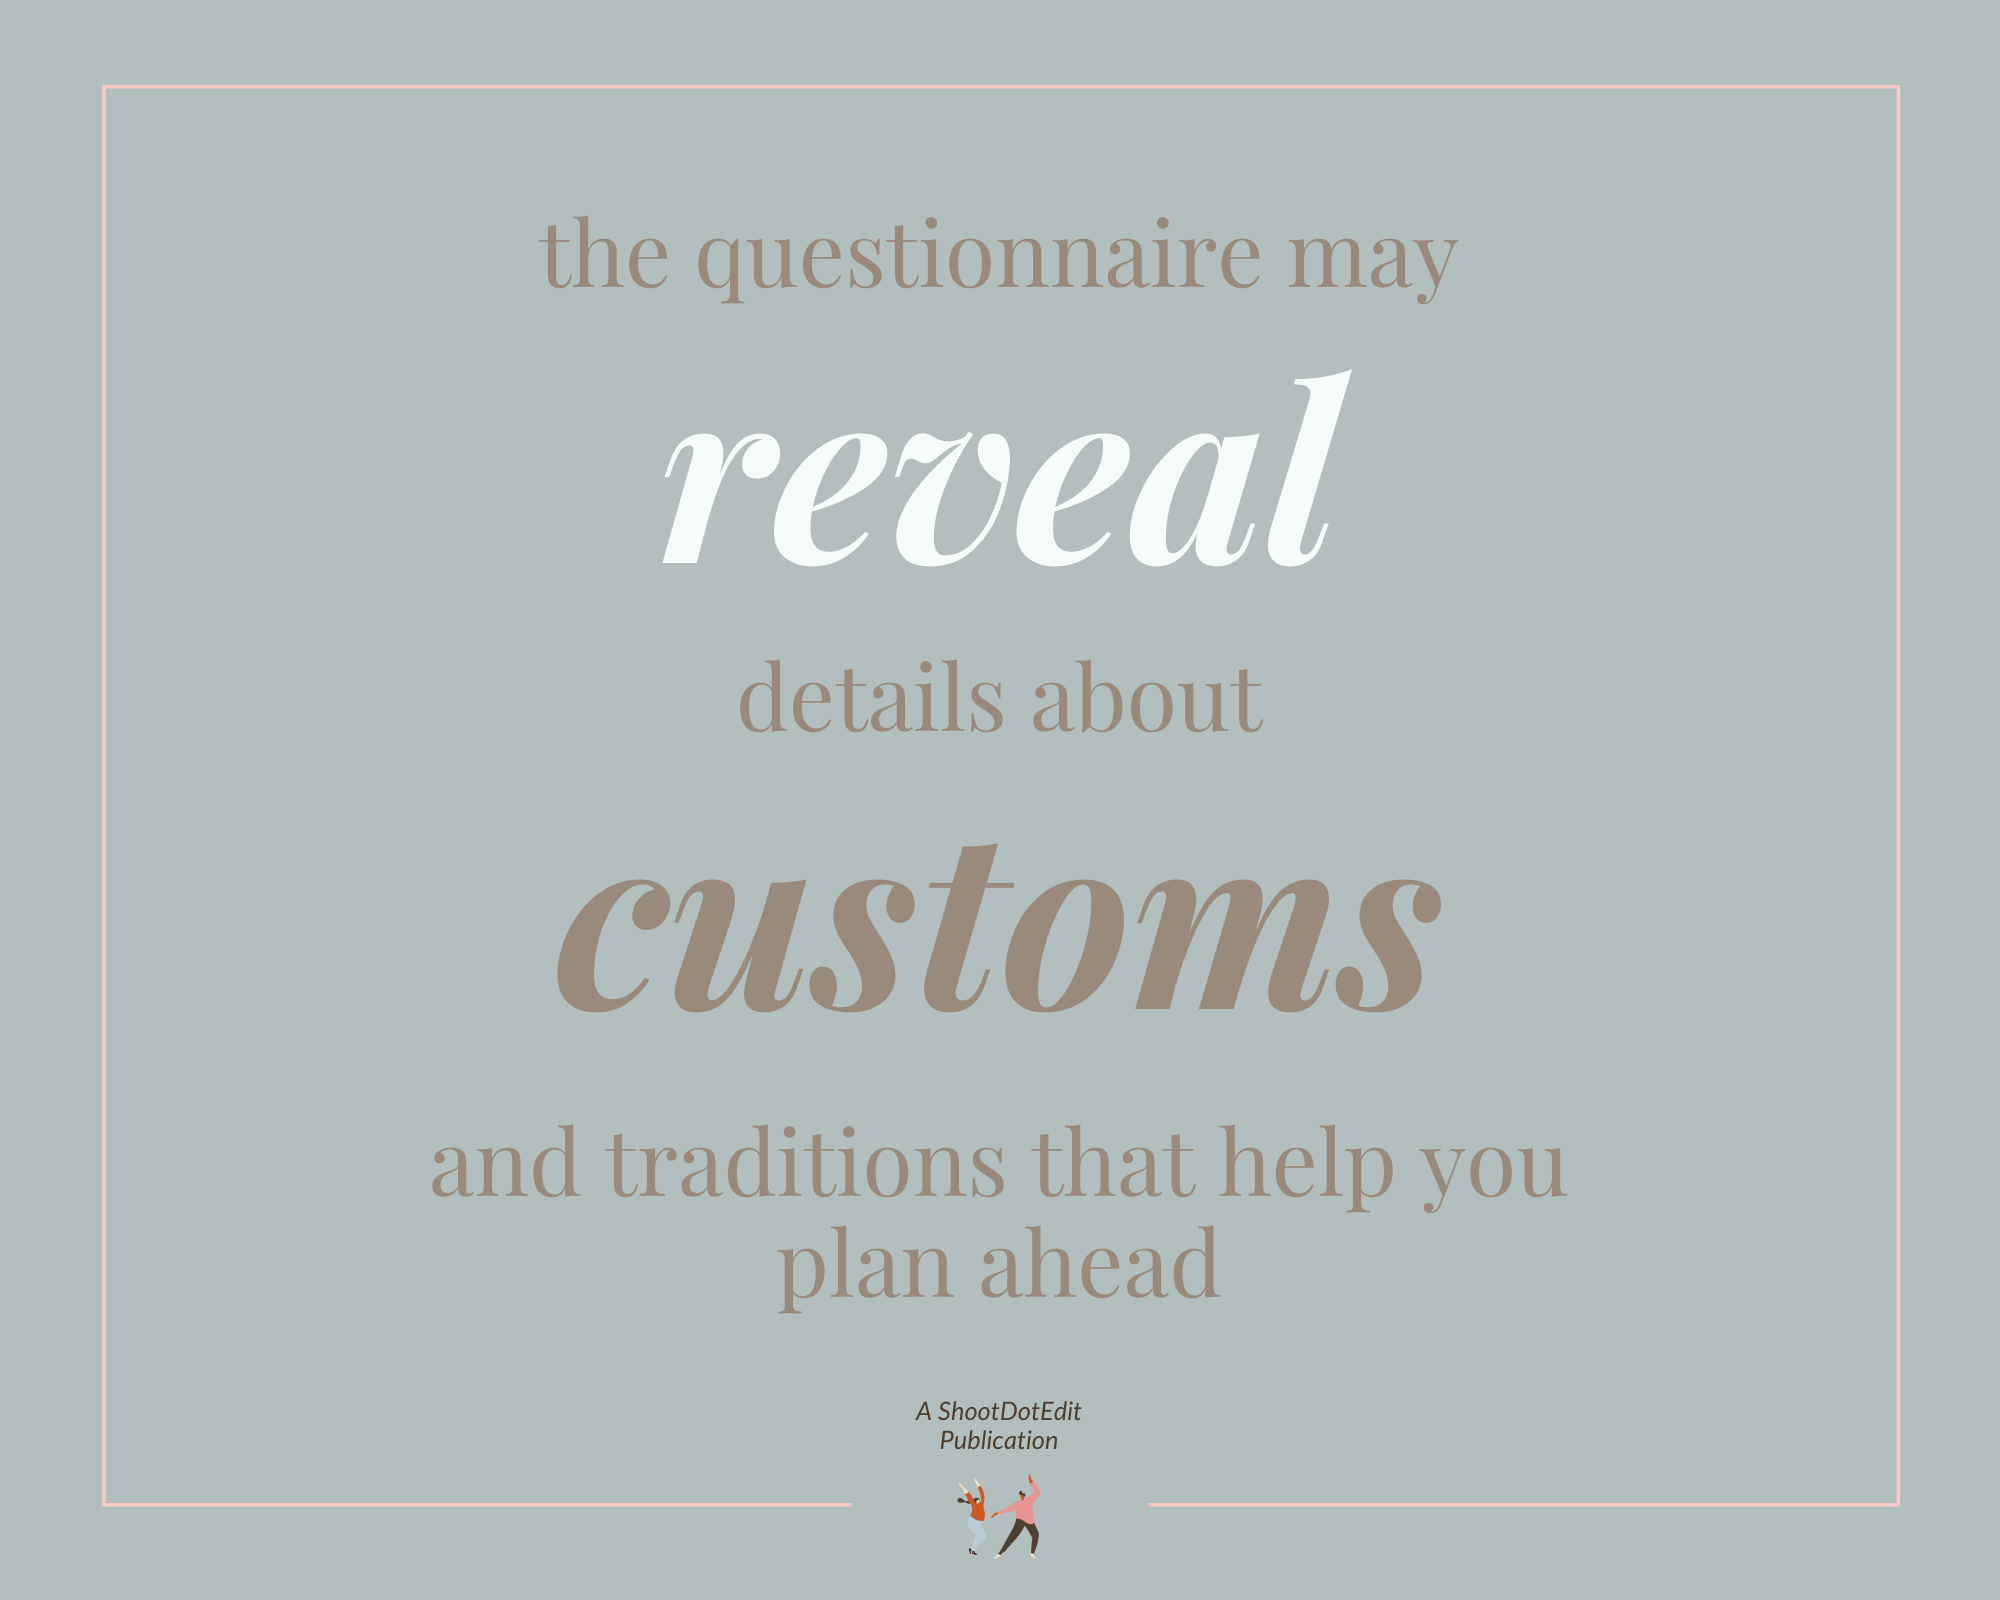 Infographic stating the questionnaire may reveal details about customs and traditions that help you plan ahead